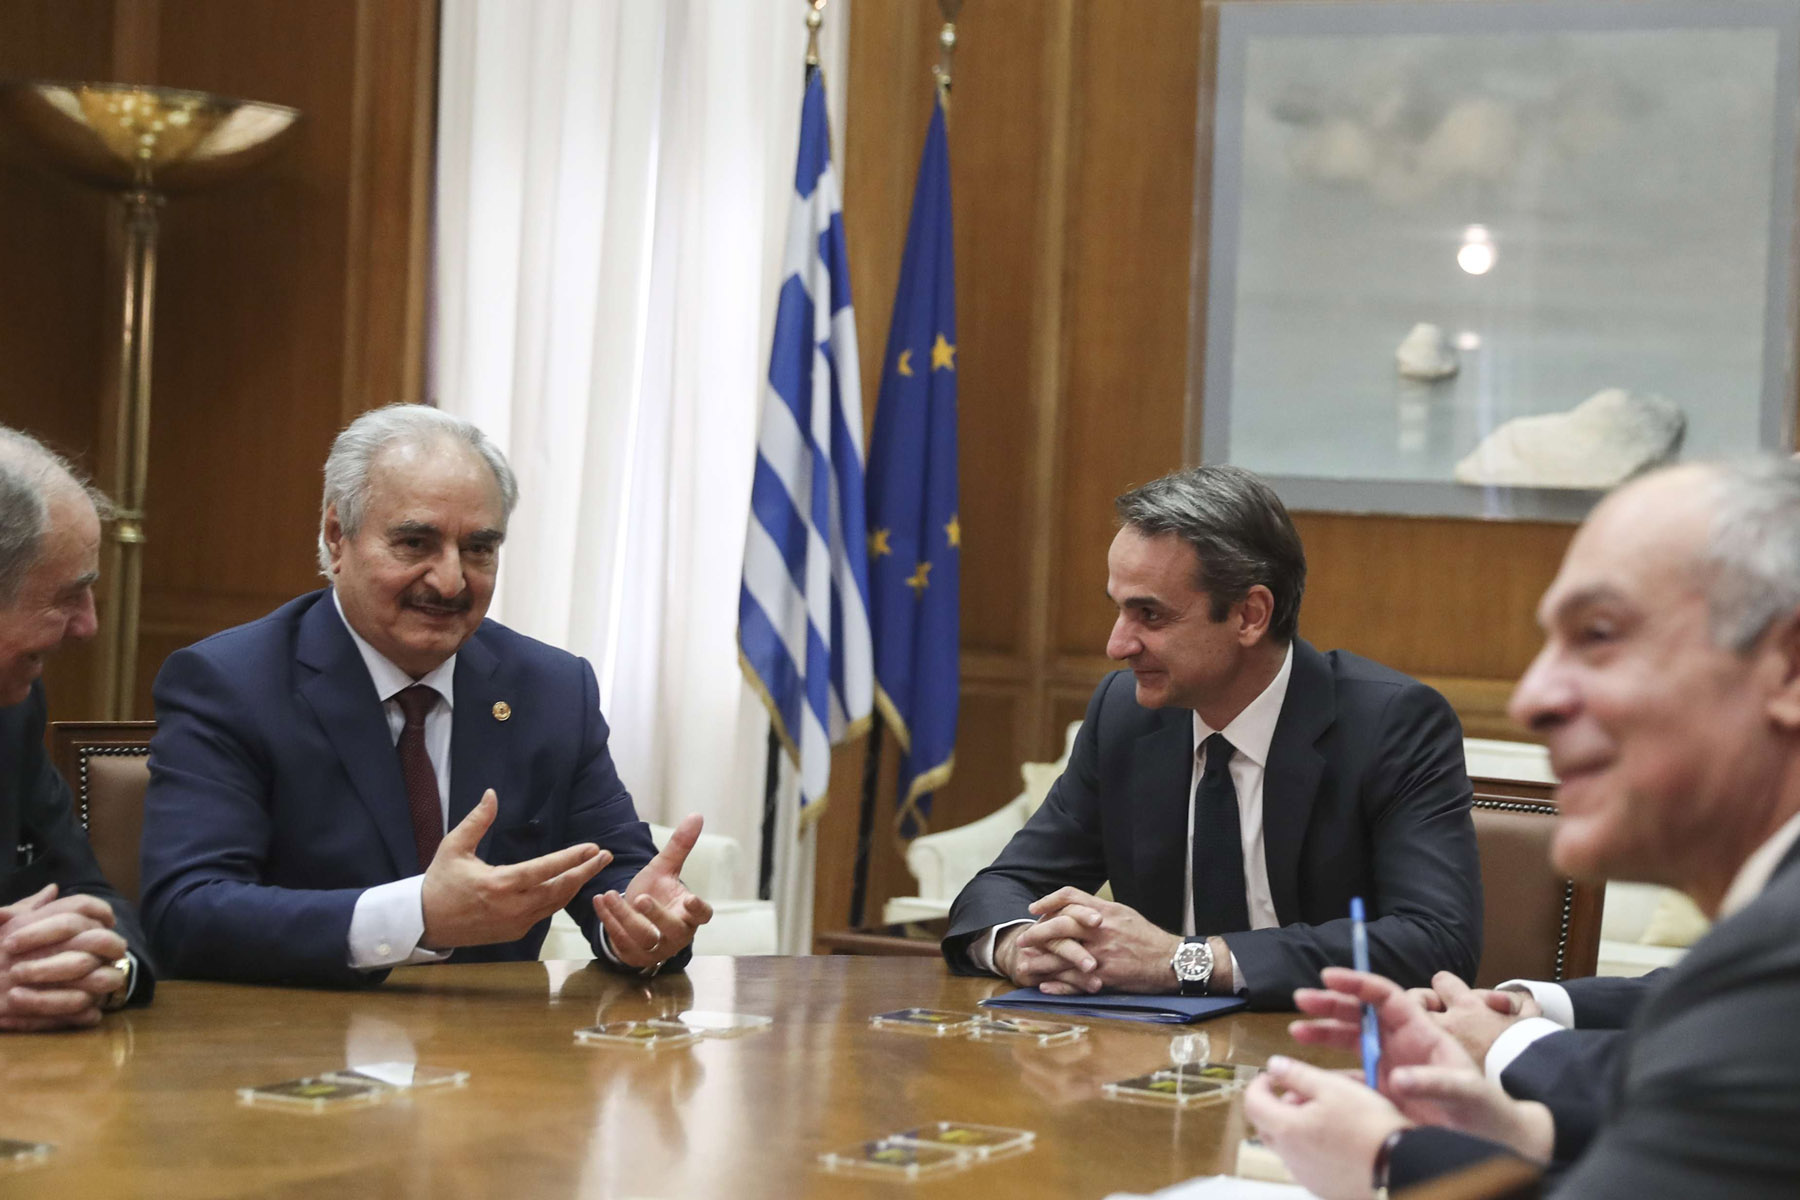 Greek Prime Minister Kyriakos Mitsotakis (2nd R) meets with Libyan National Army Field-Marshal Khalifa Hafter (2nd L) in Athens, January 17. (AP)